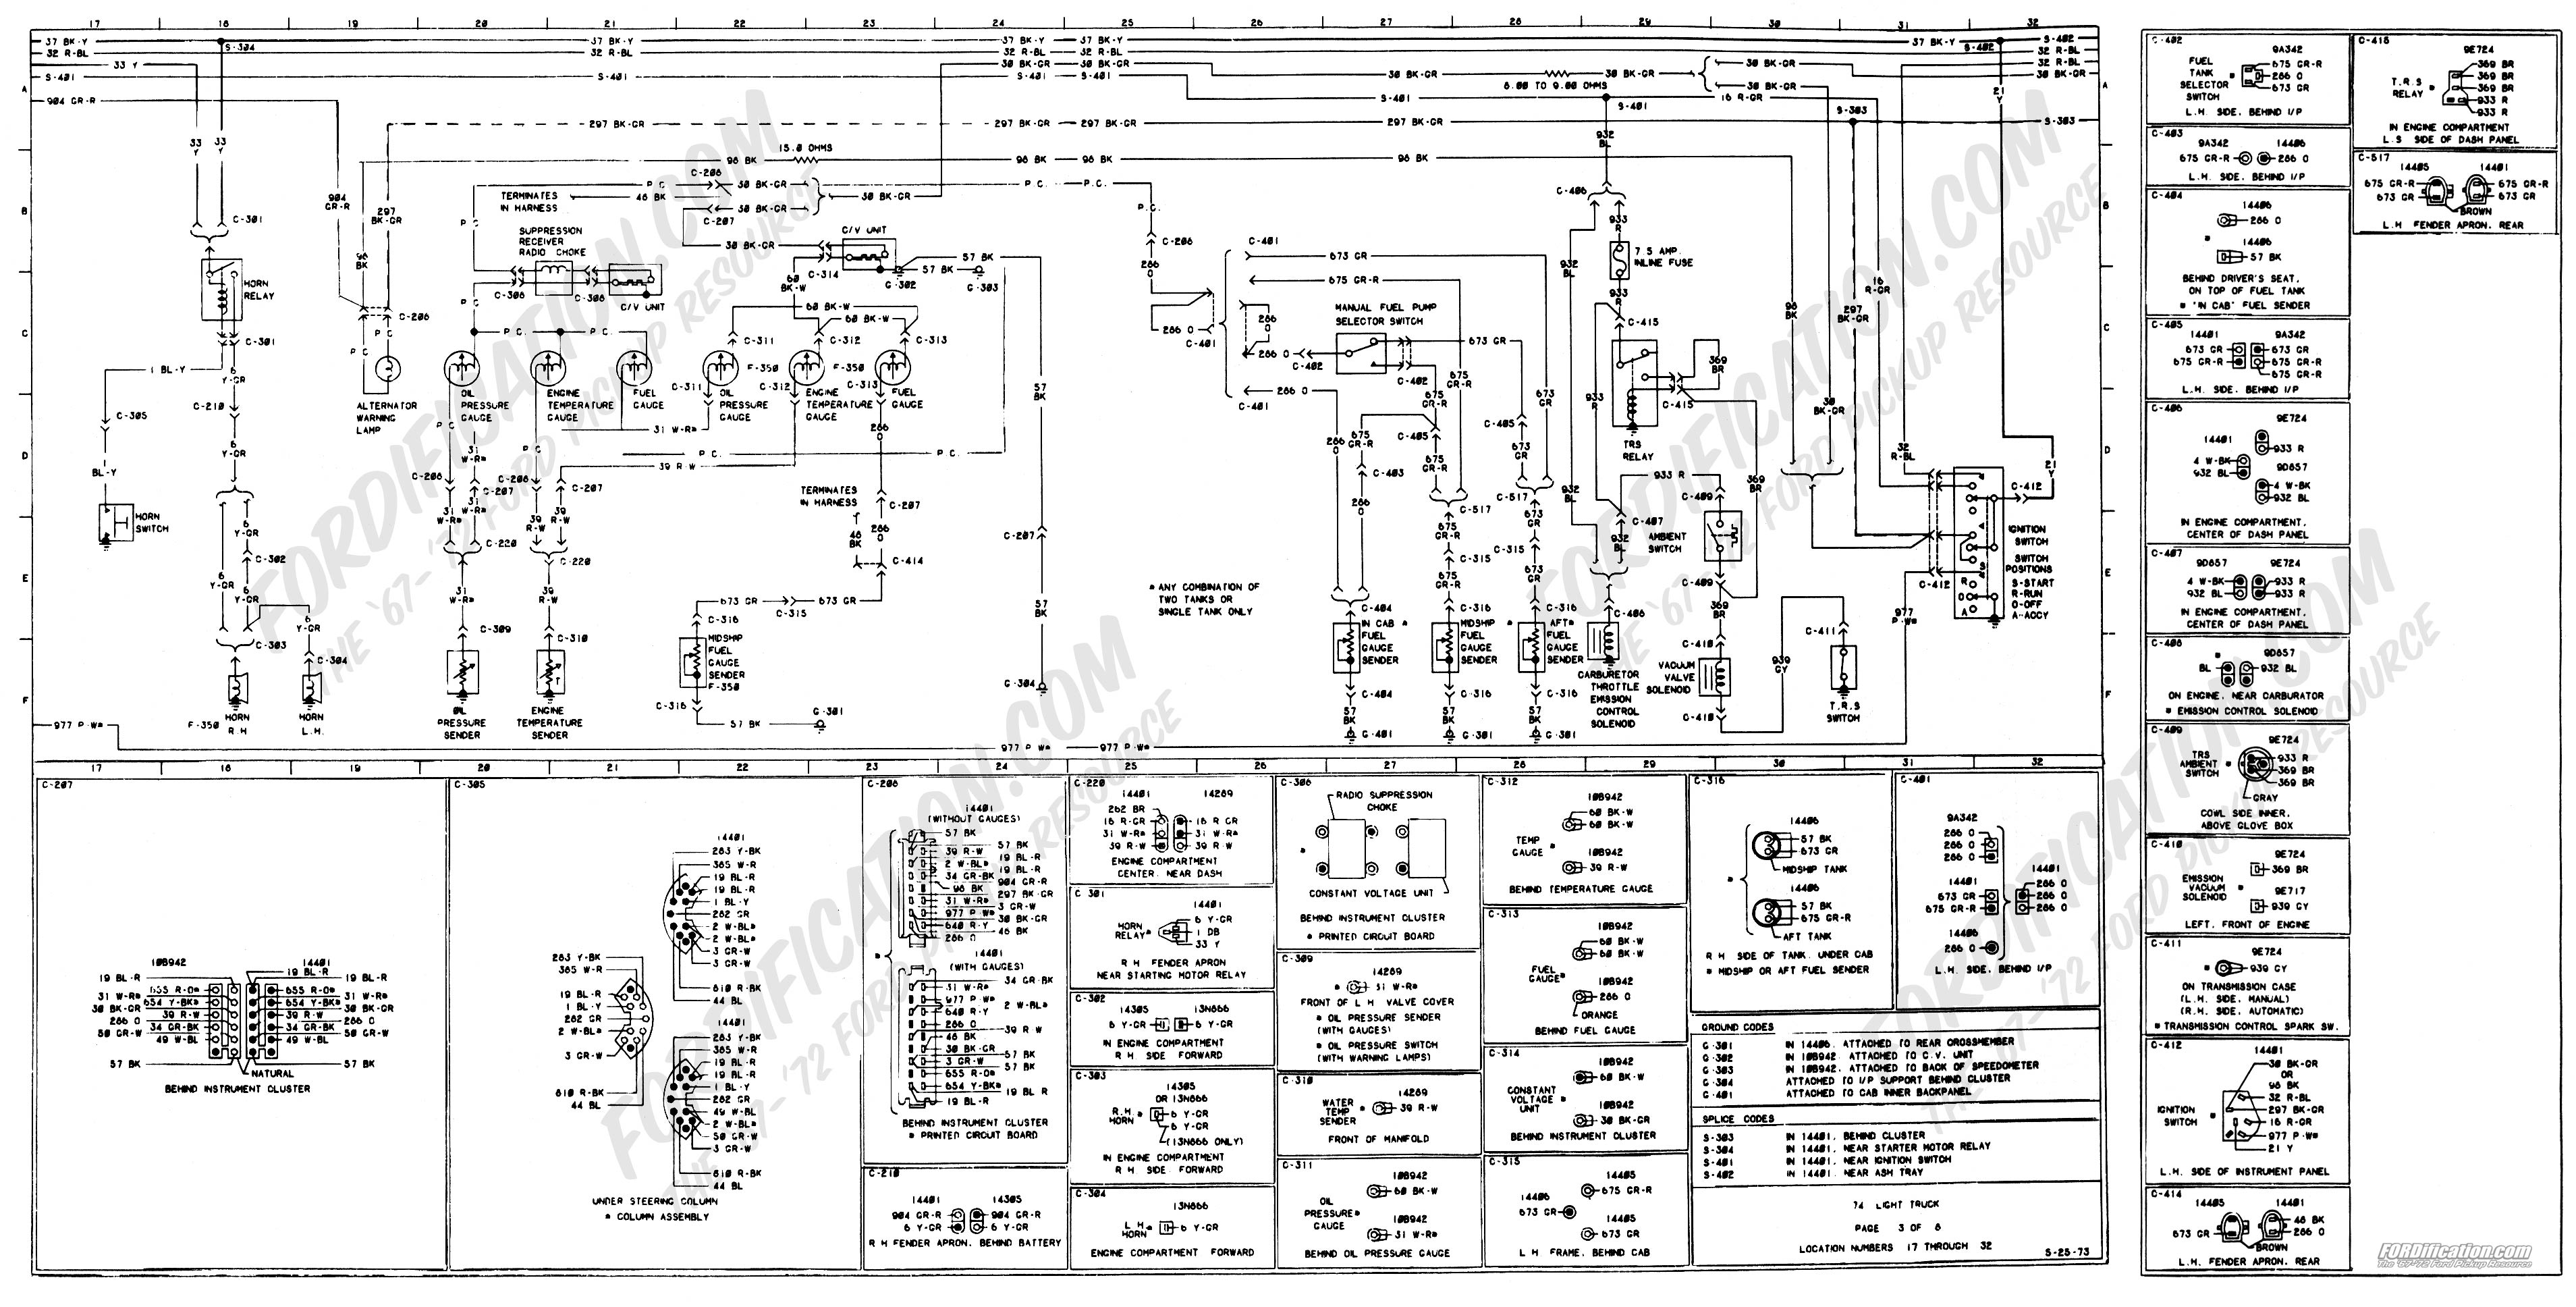 Wiring Master Of on 1994 Dodge Ram Ignition Wiring Diagram